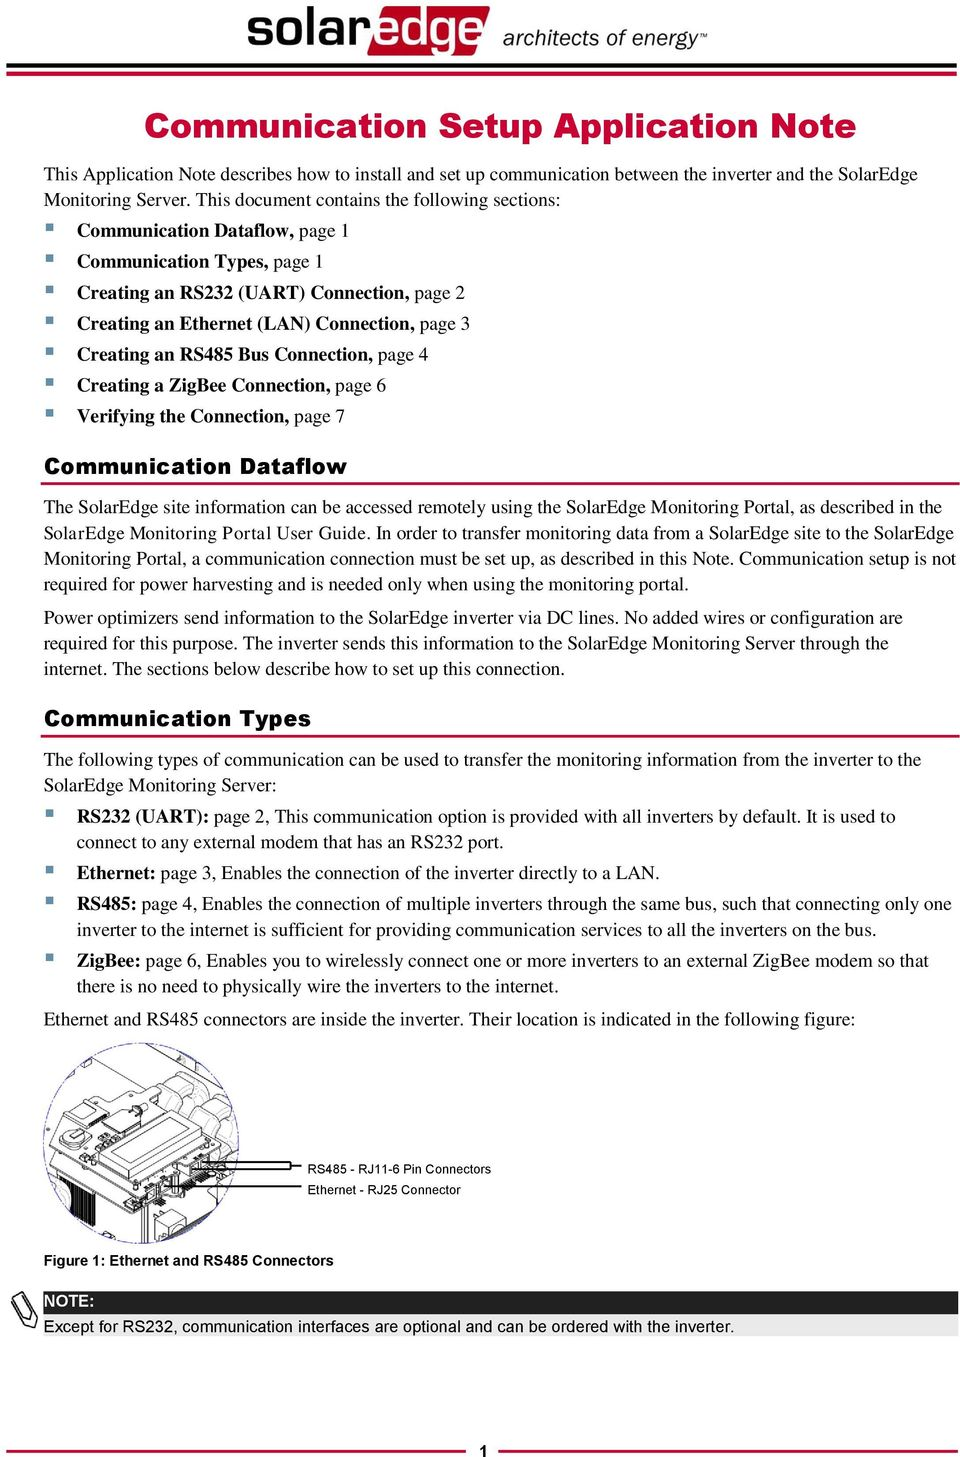 Communication Setup Application Note Pdf Rj25 Jack Wiring Creating An Rs485 Bus Connection Page 4 A Zigbee 6 Verifying